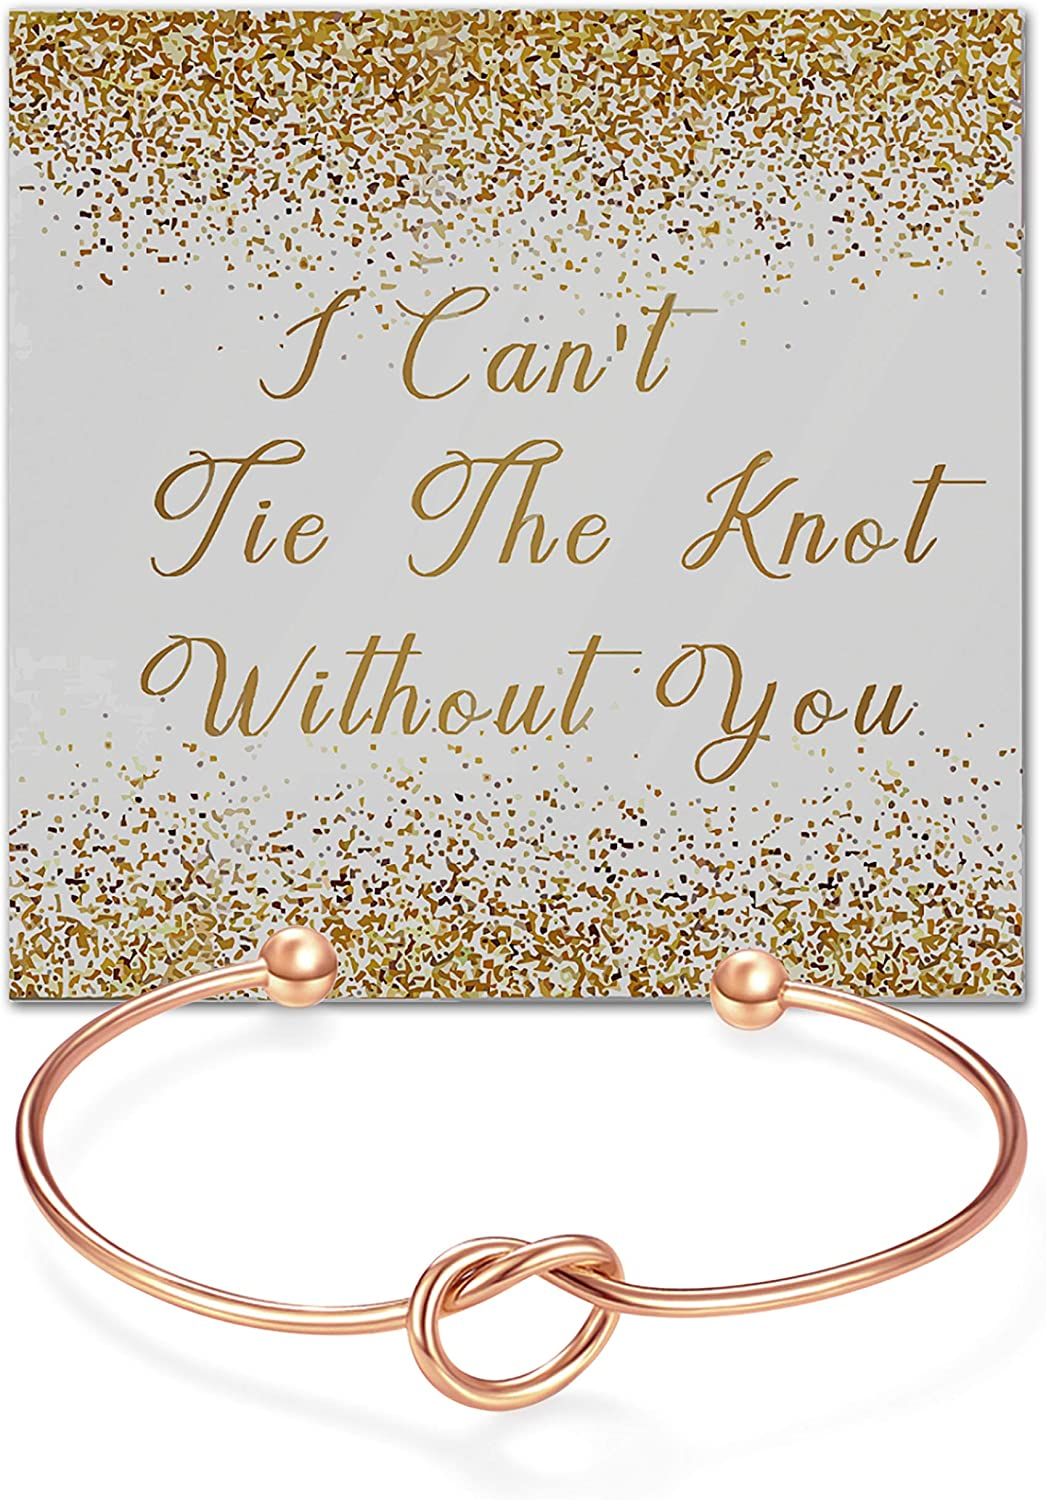 I Couldnt Say I DO Without You Stainless Steel Engraved Cuff Wedding Bangle for Bride Tribe Bridesmaid Maid of Honor Bridesmaid Proposal Gifts Adjustable Bracelets